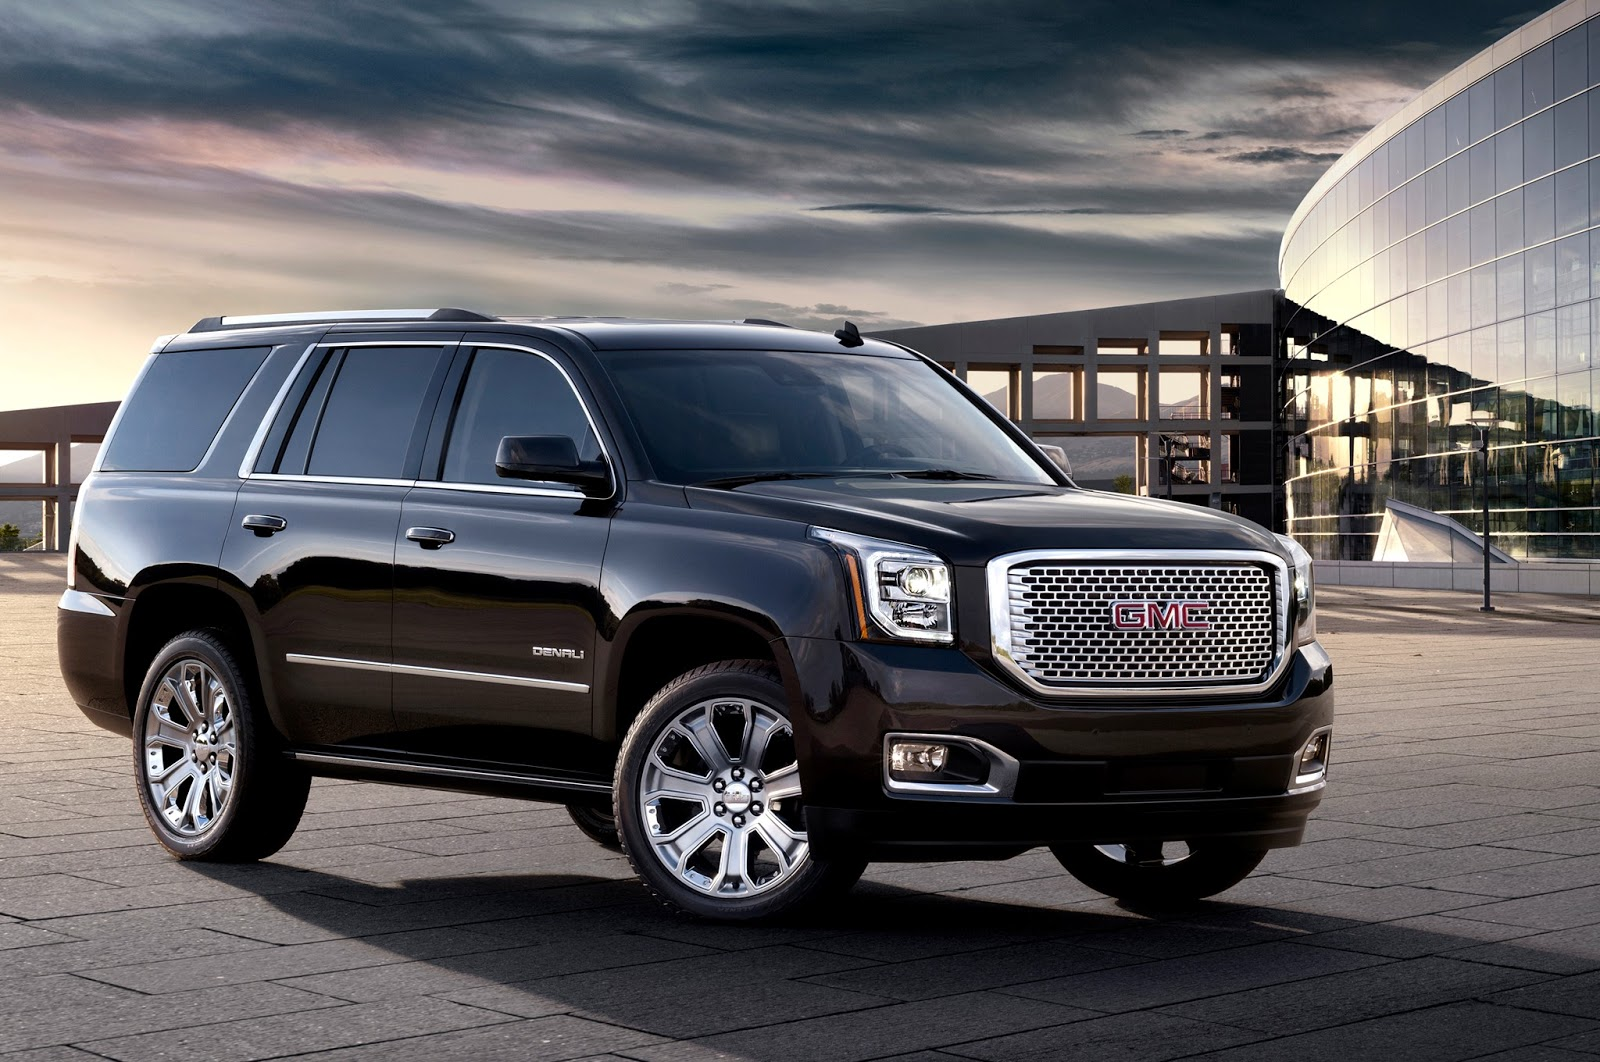 2016 GMC Yukon Concept Release date - 2017 Top Car Zone